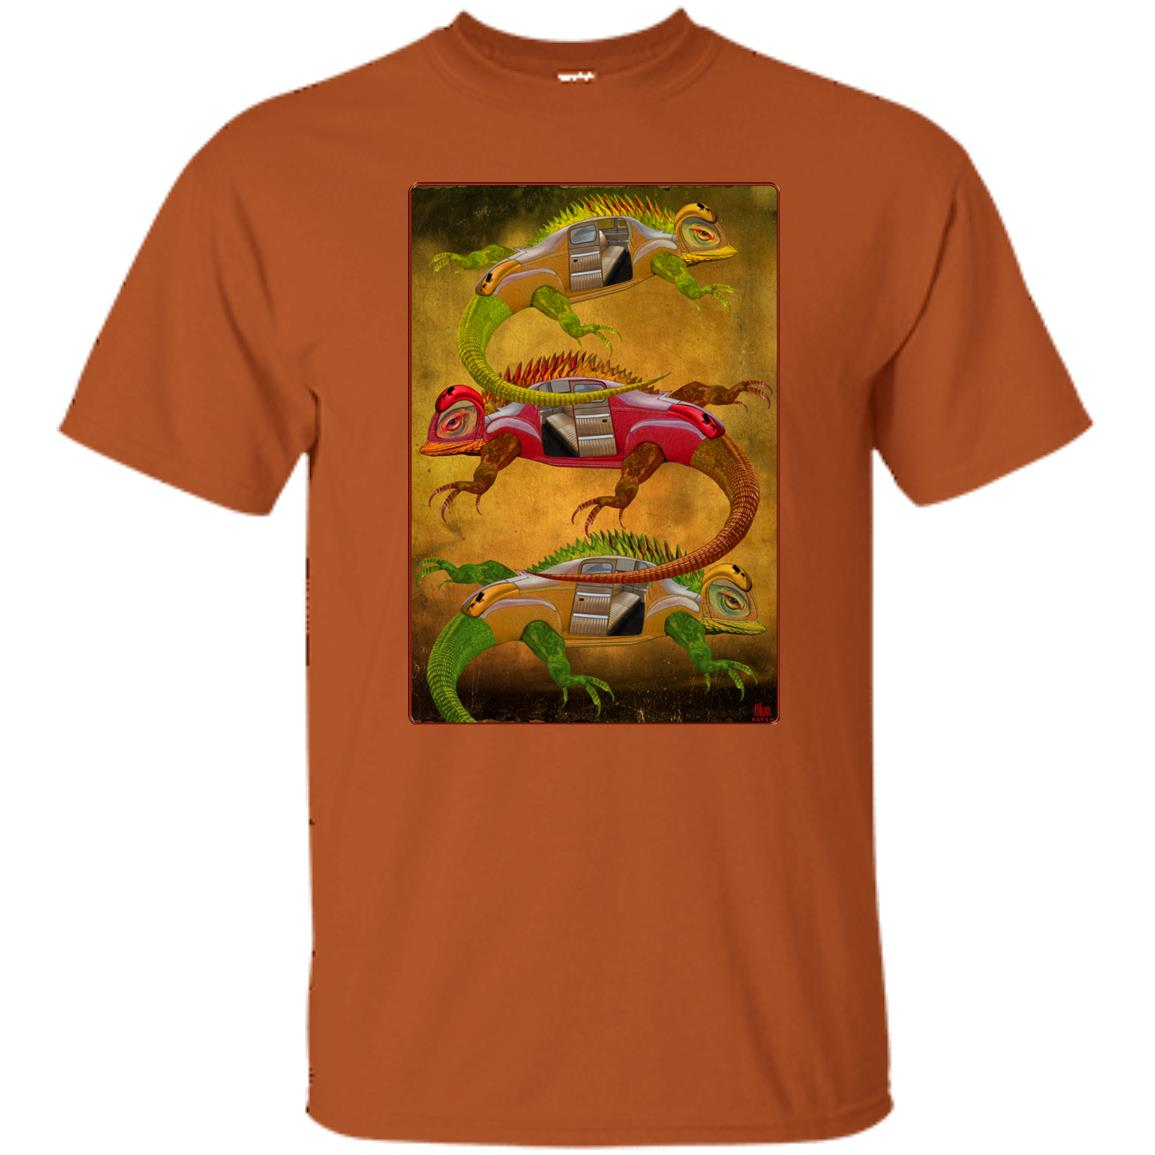 Uber Lizards - Men's Classic Fit T-Shirt